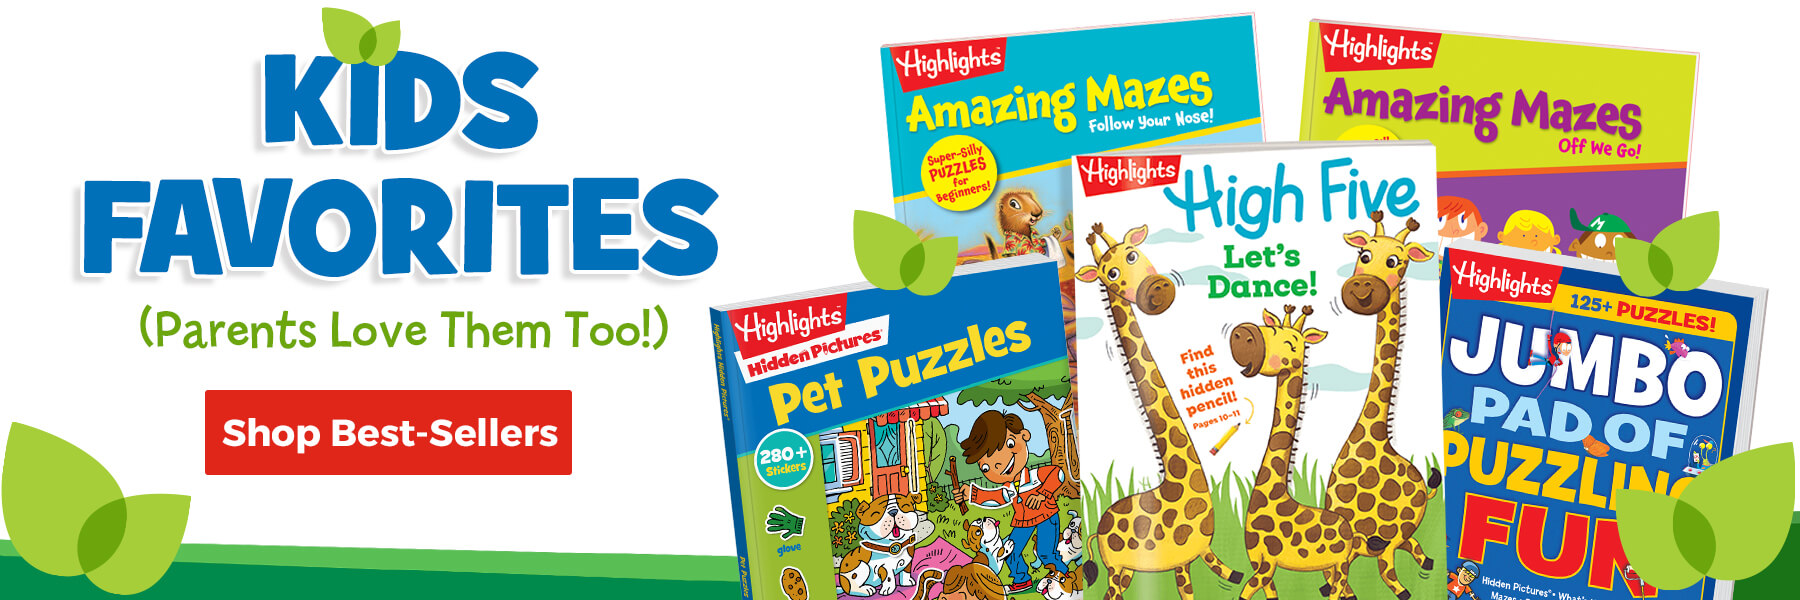 Check out our best sellers – favorites of kids and parents too!